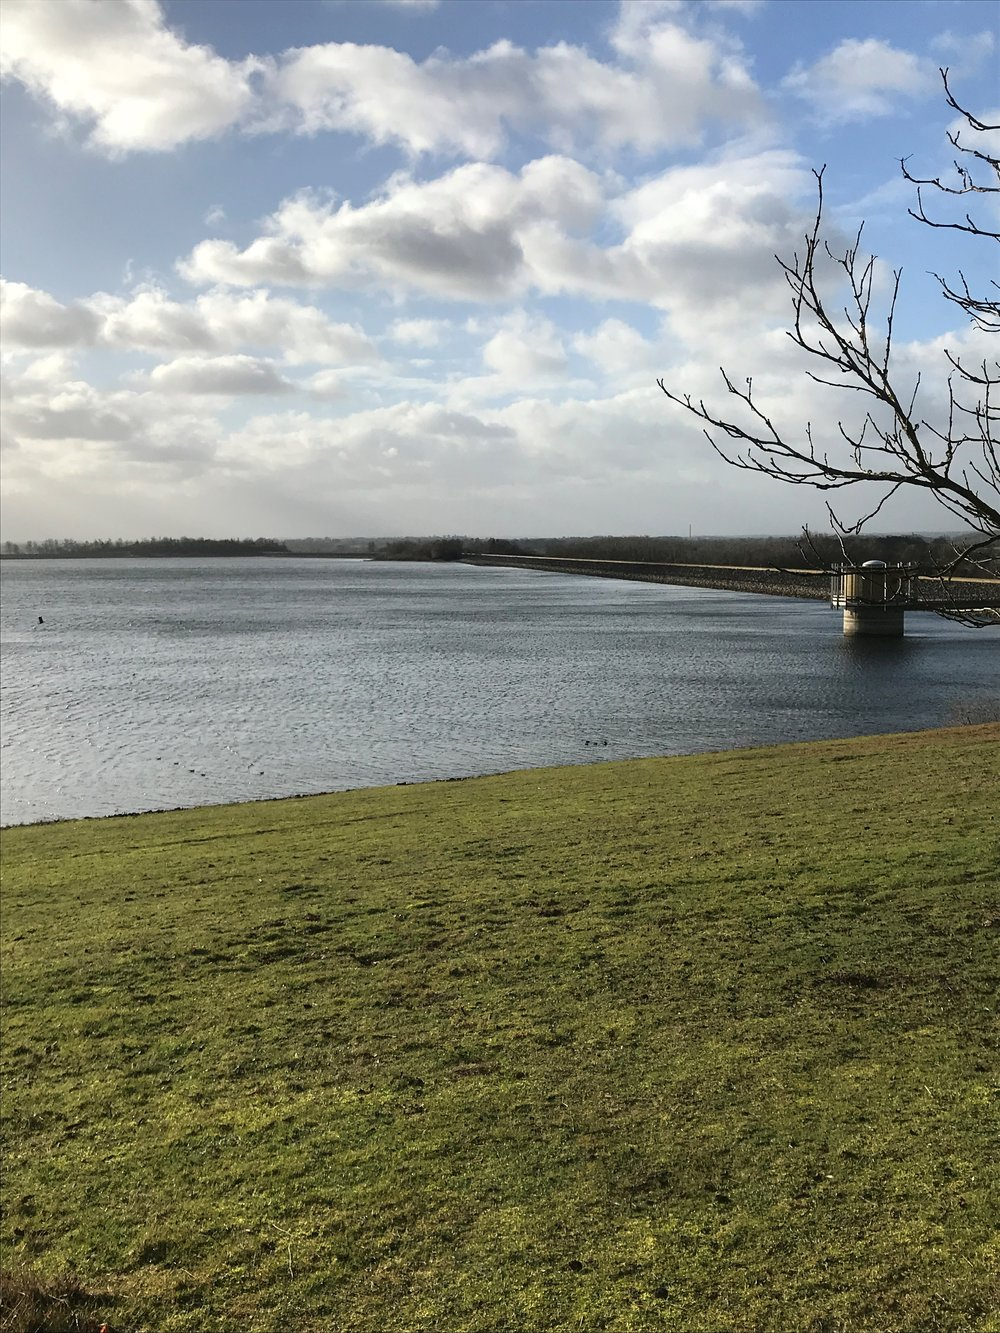 Pat Hipkiss Jan 2019 image 5 Draycote Water.jpg